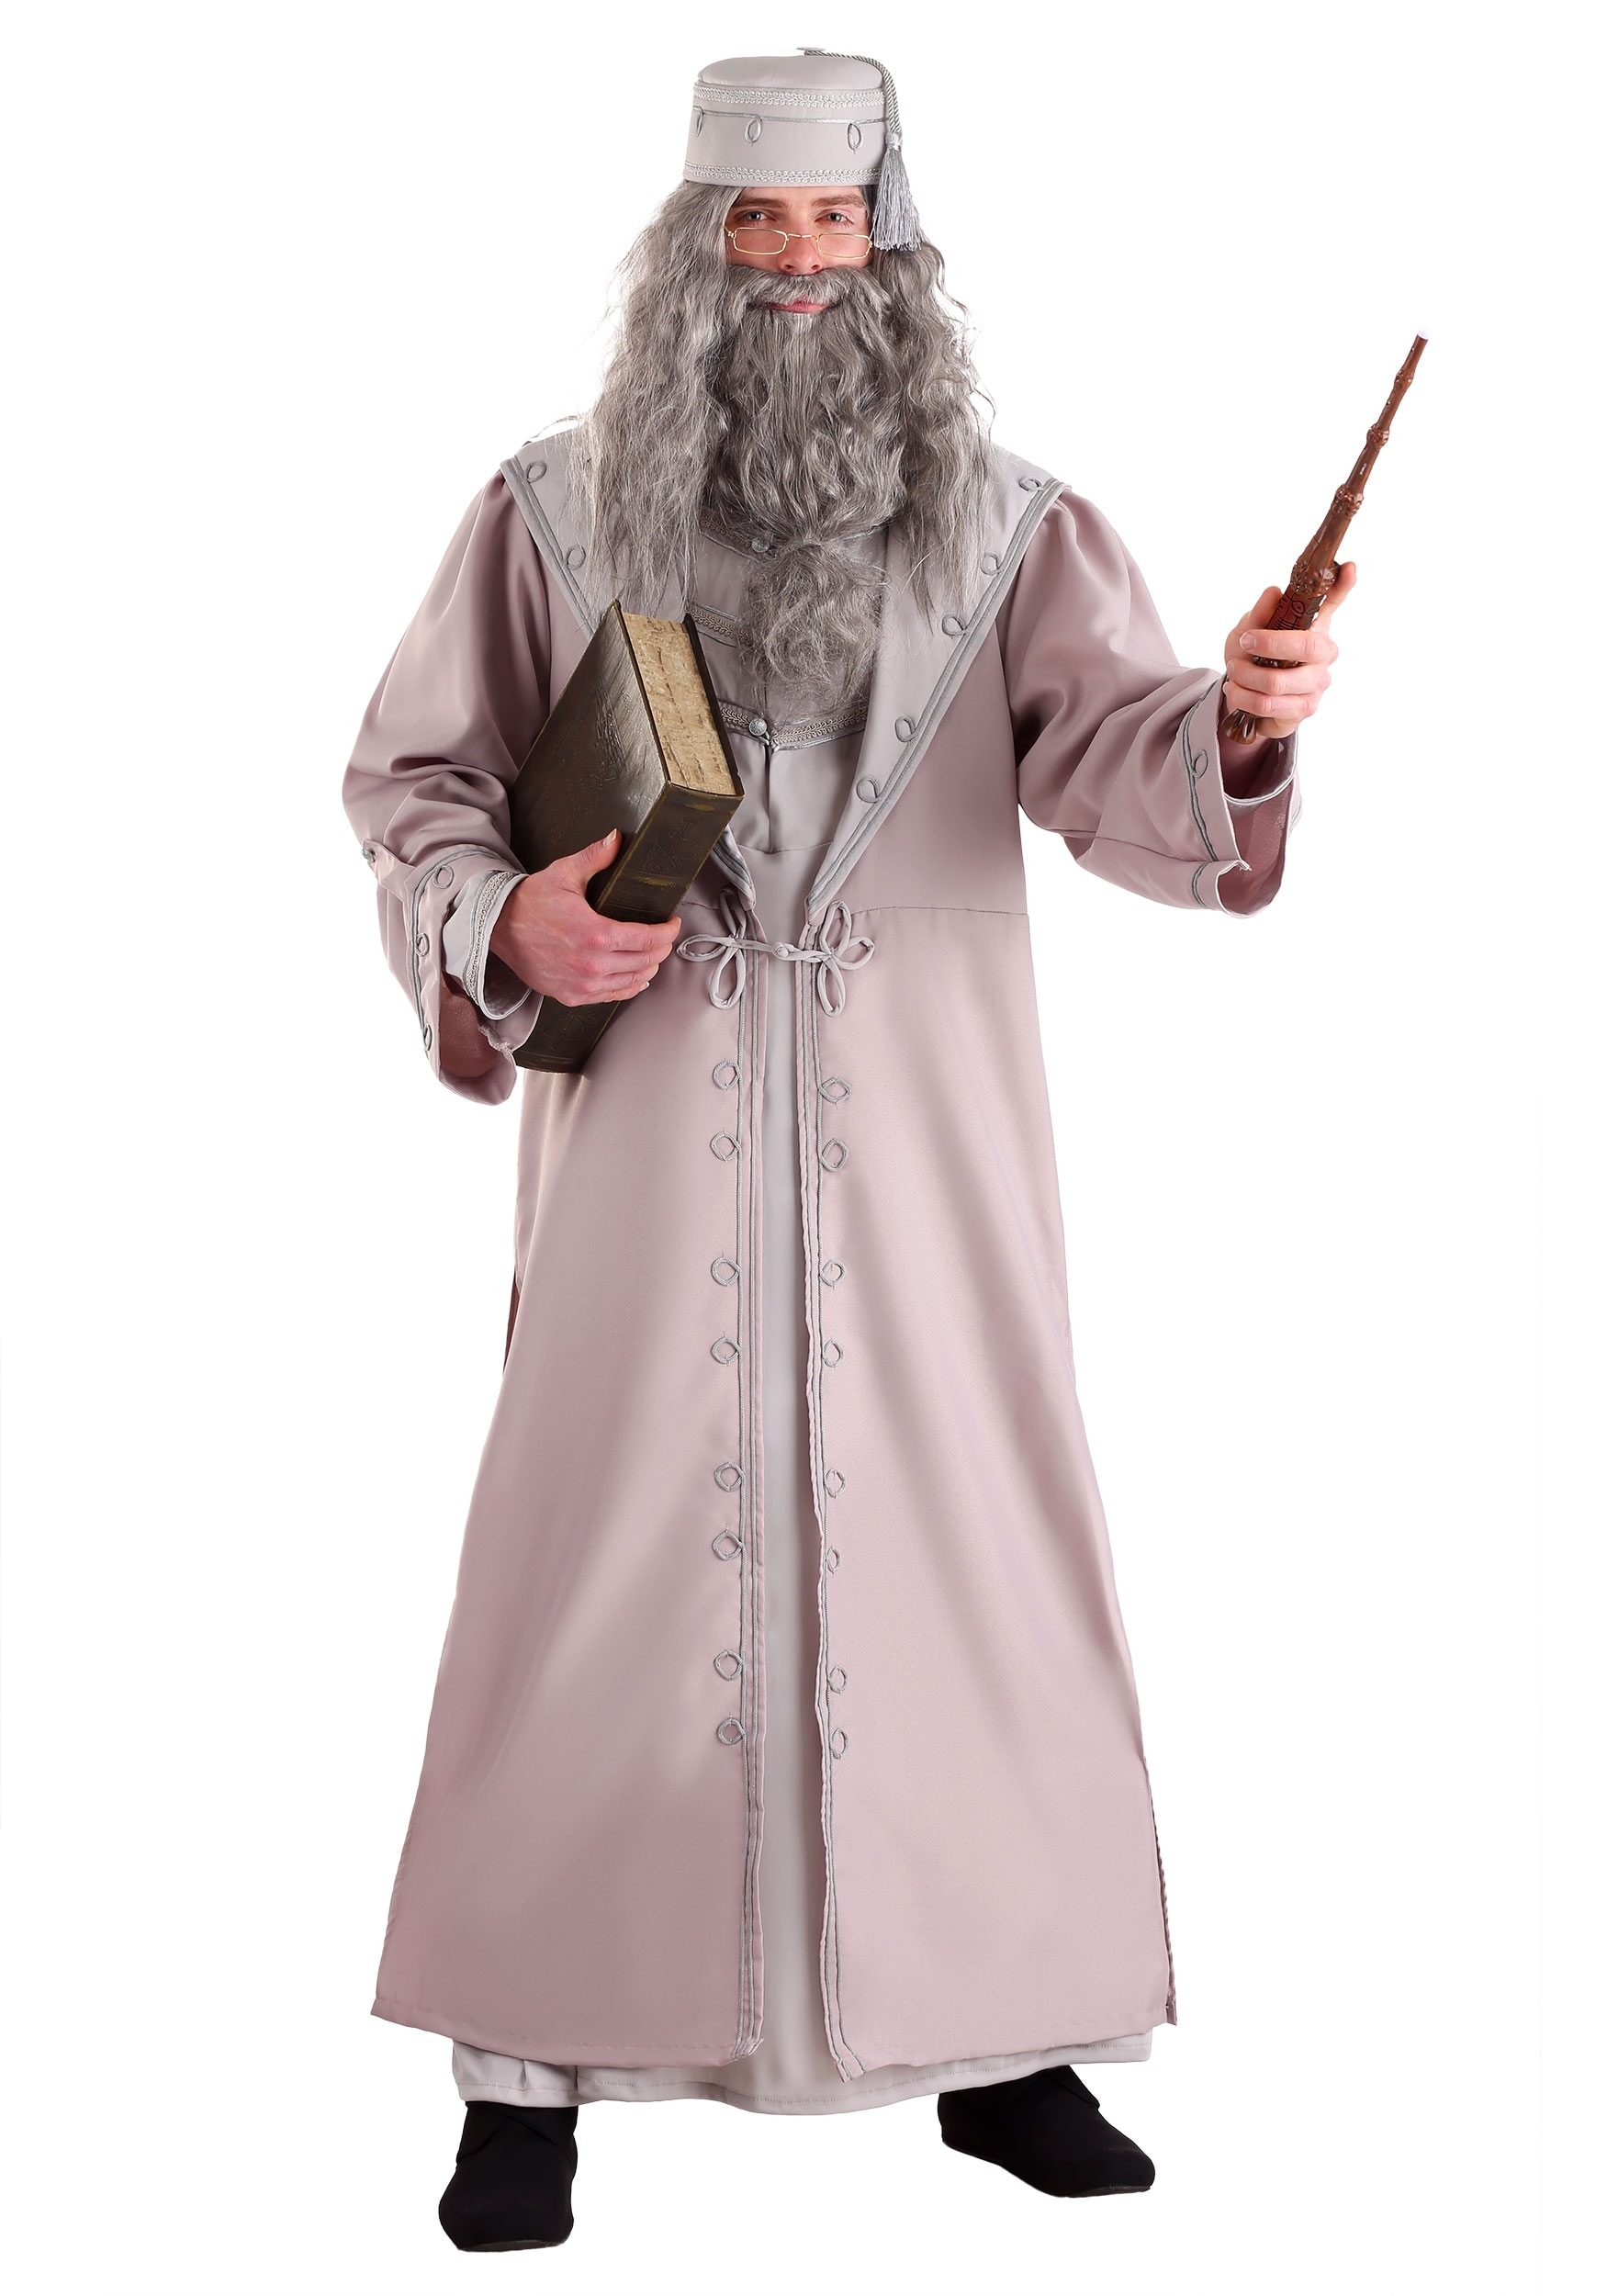 Harry potter costumes accessories halloweencostumes deluxe dumbledore adult costume solutioingenieria